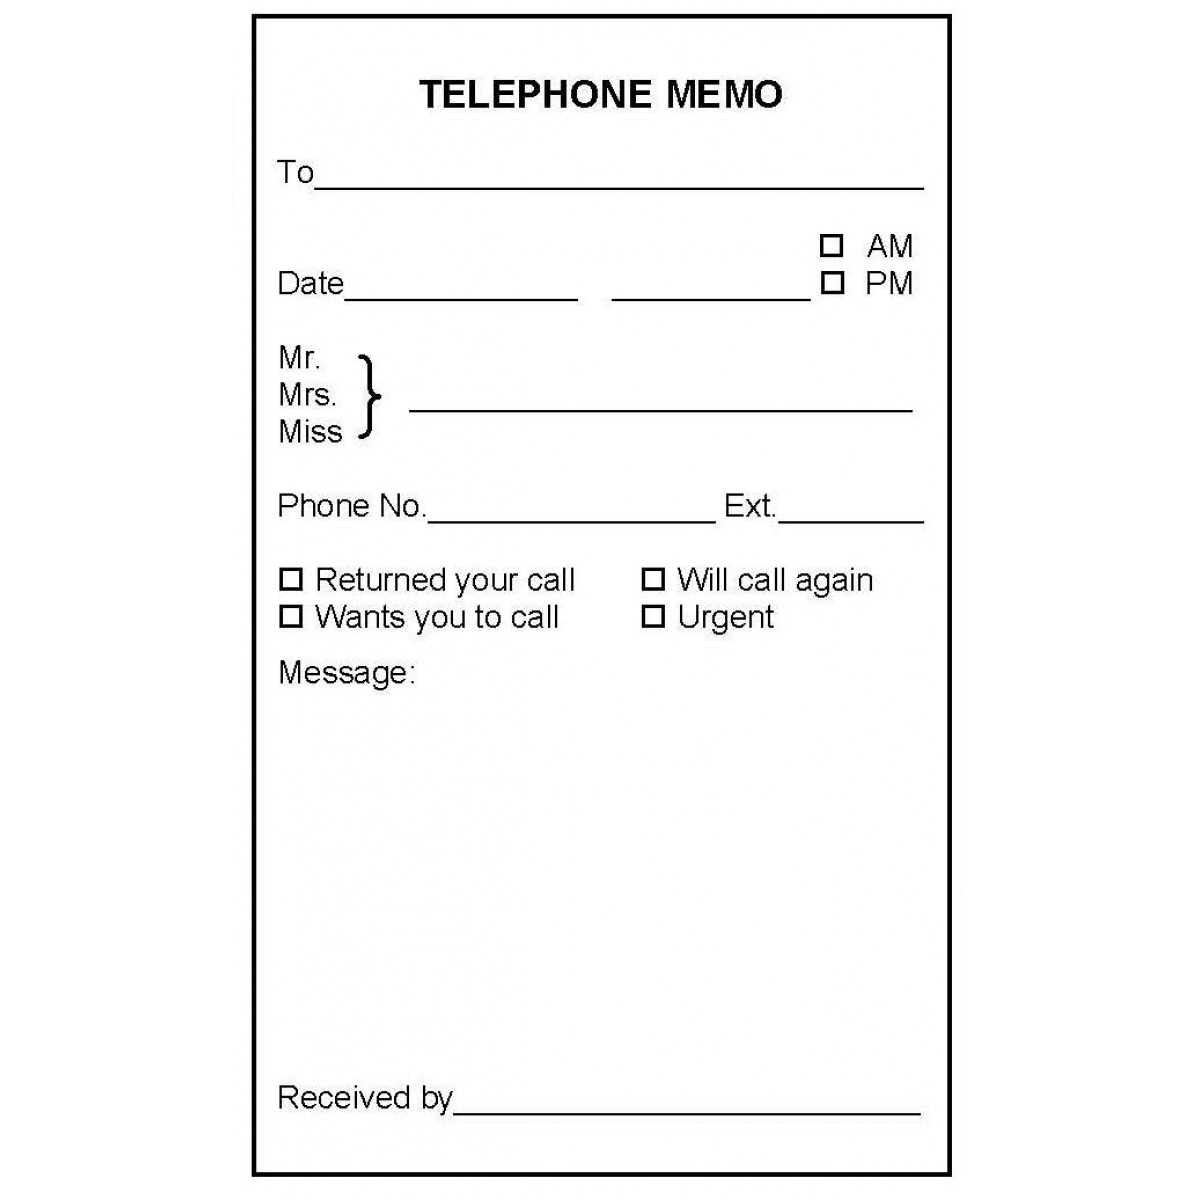 B7a telephone memo book book forms for Telephone memo template